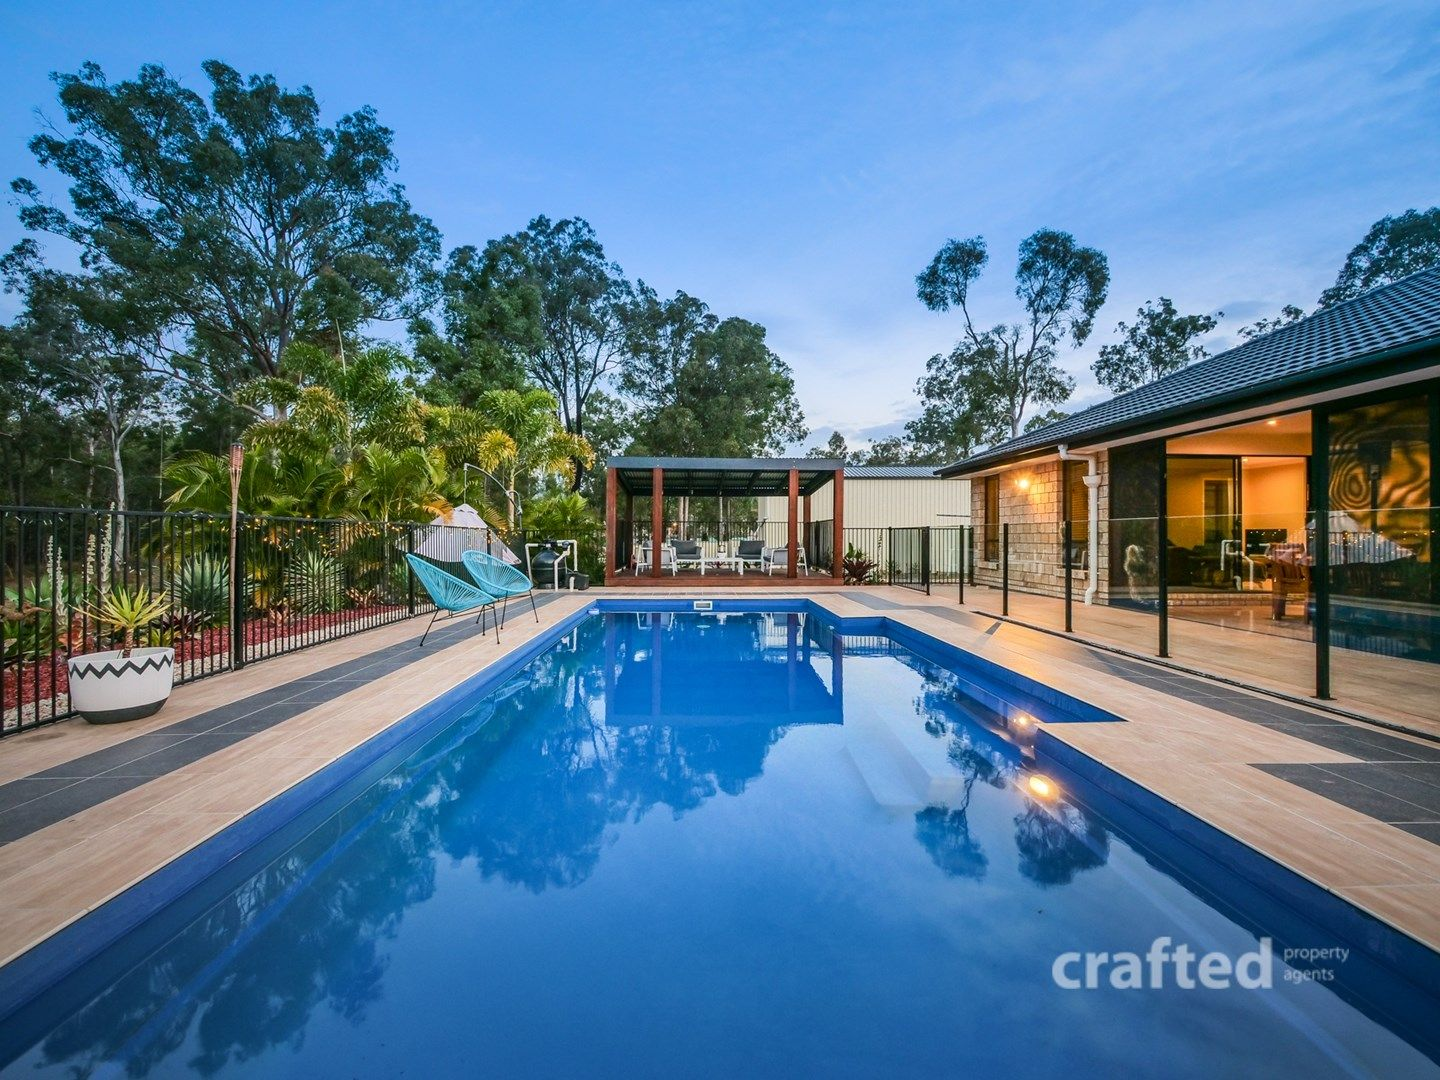 10-12 Sandstone Road, Greenbank QLD 4124, Image 0